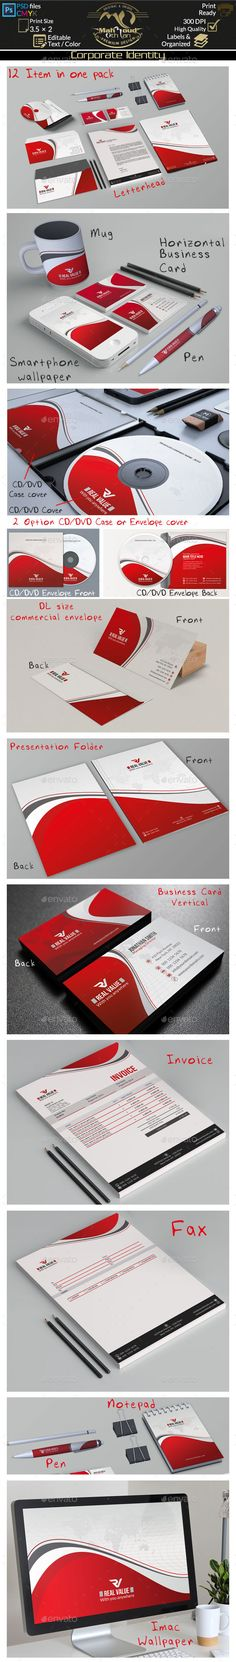 Corporate Identity and Office Supply Template Corporate identity - office supply template